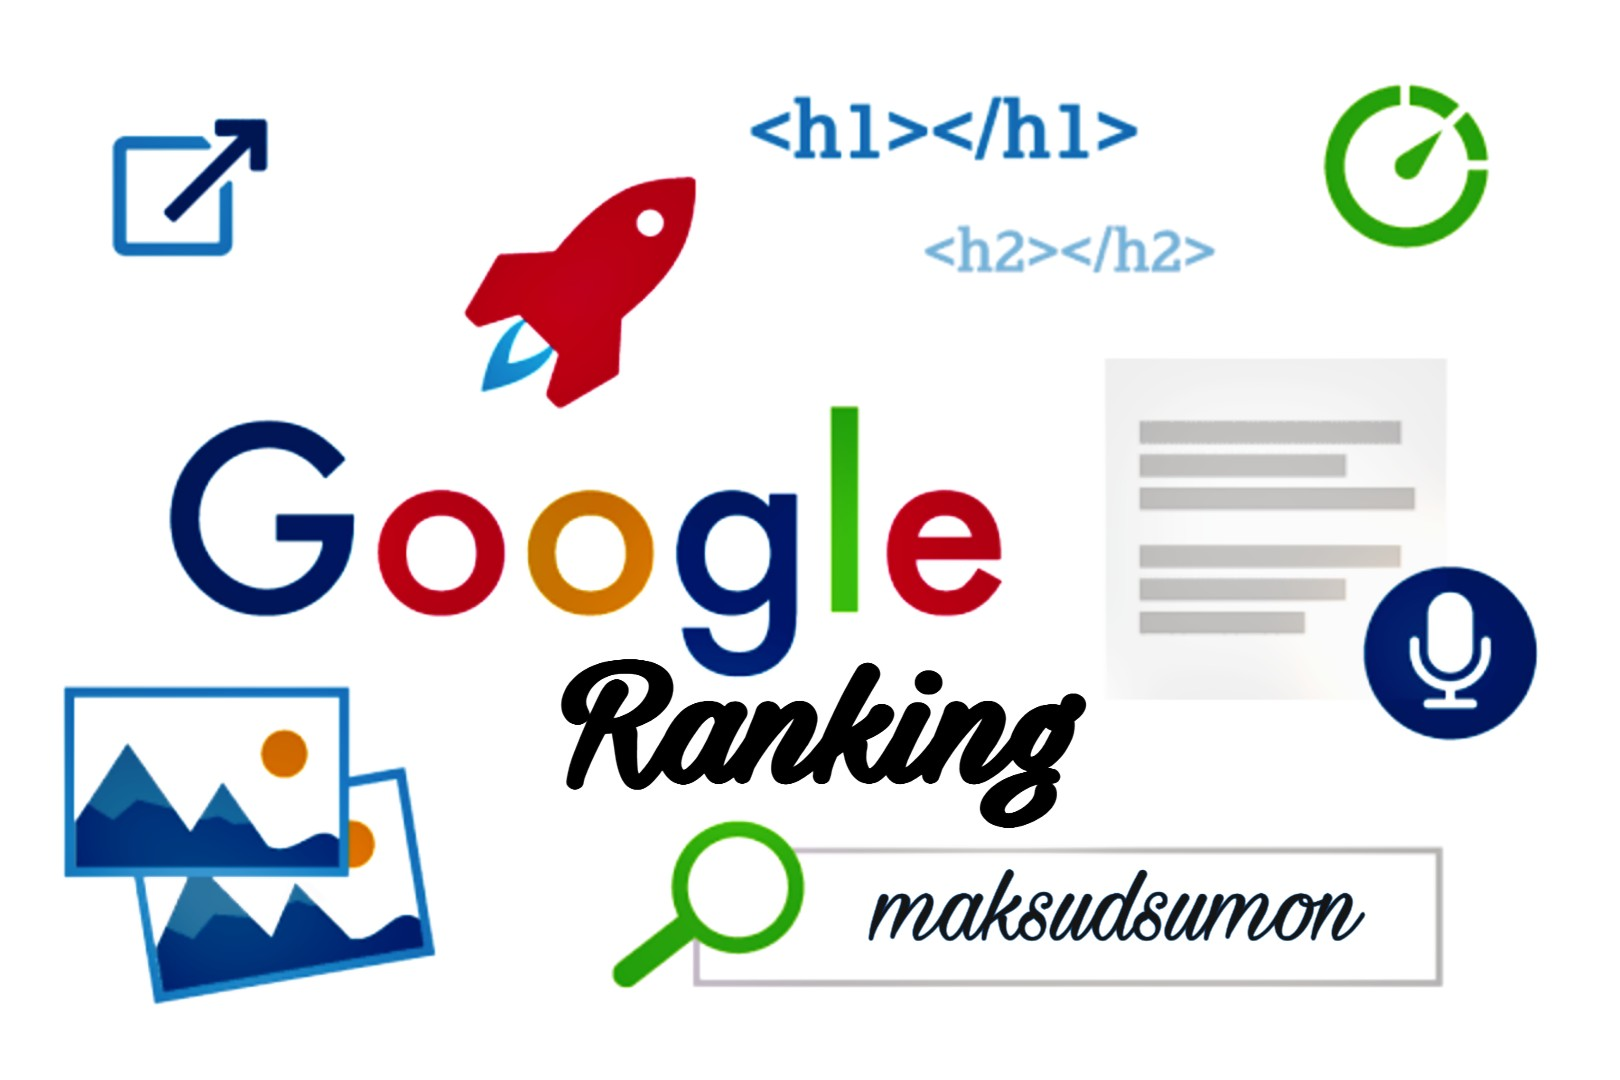 offer guaranteed rank your website on google 1st page only 21 days